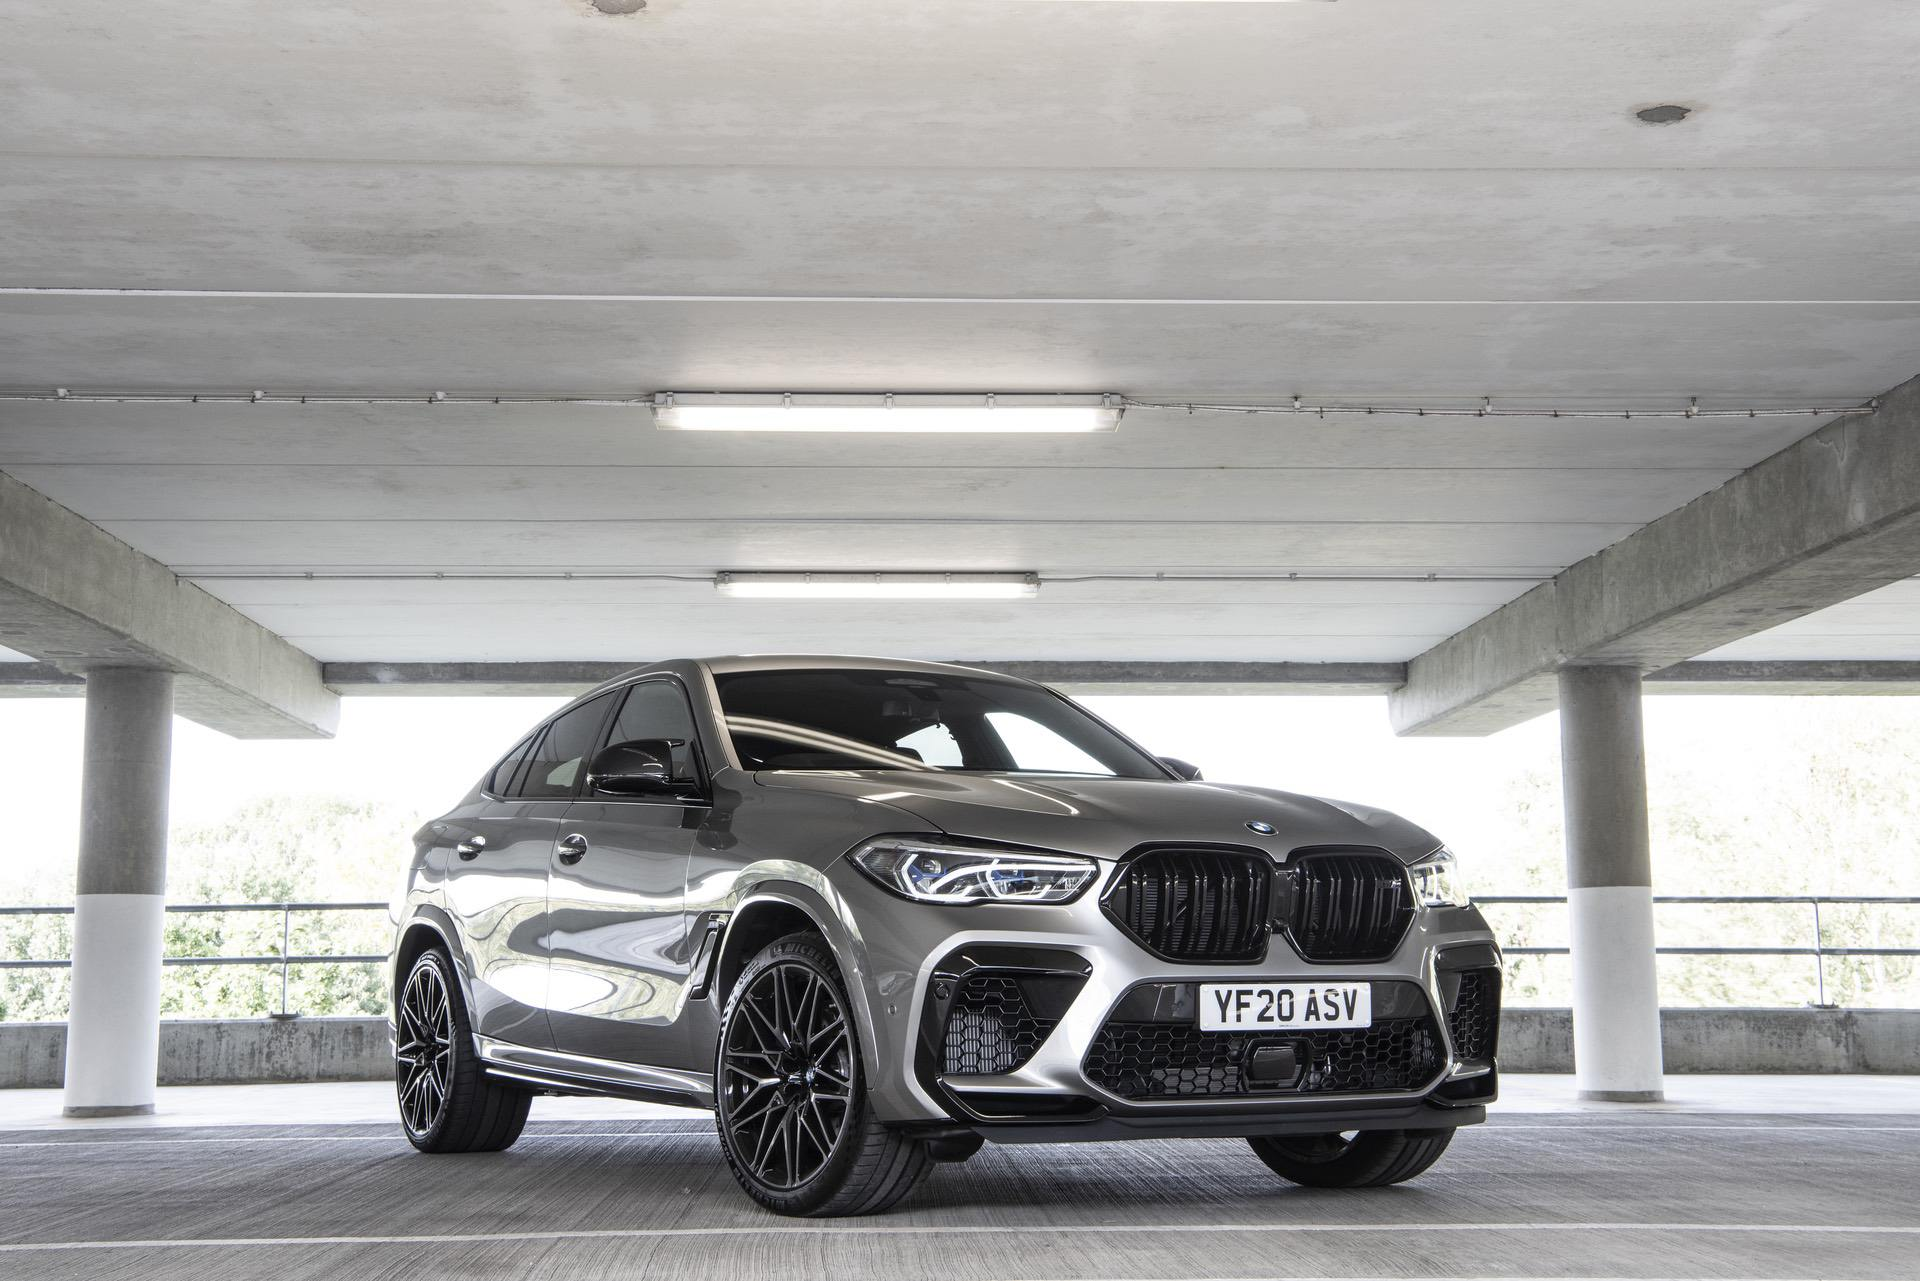 2021 bmw x6m Donington Grey metallic 11